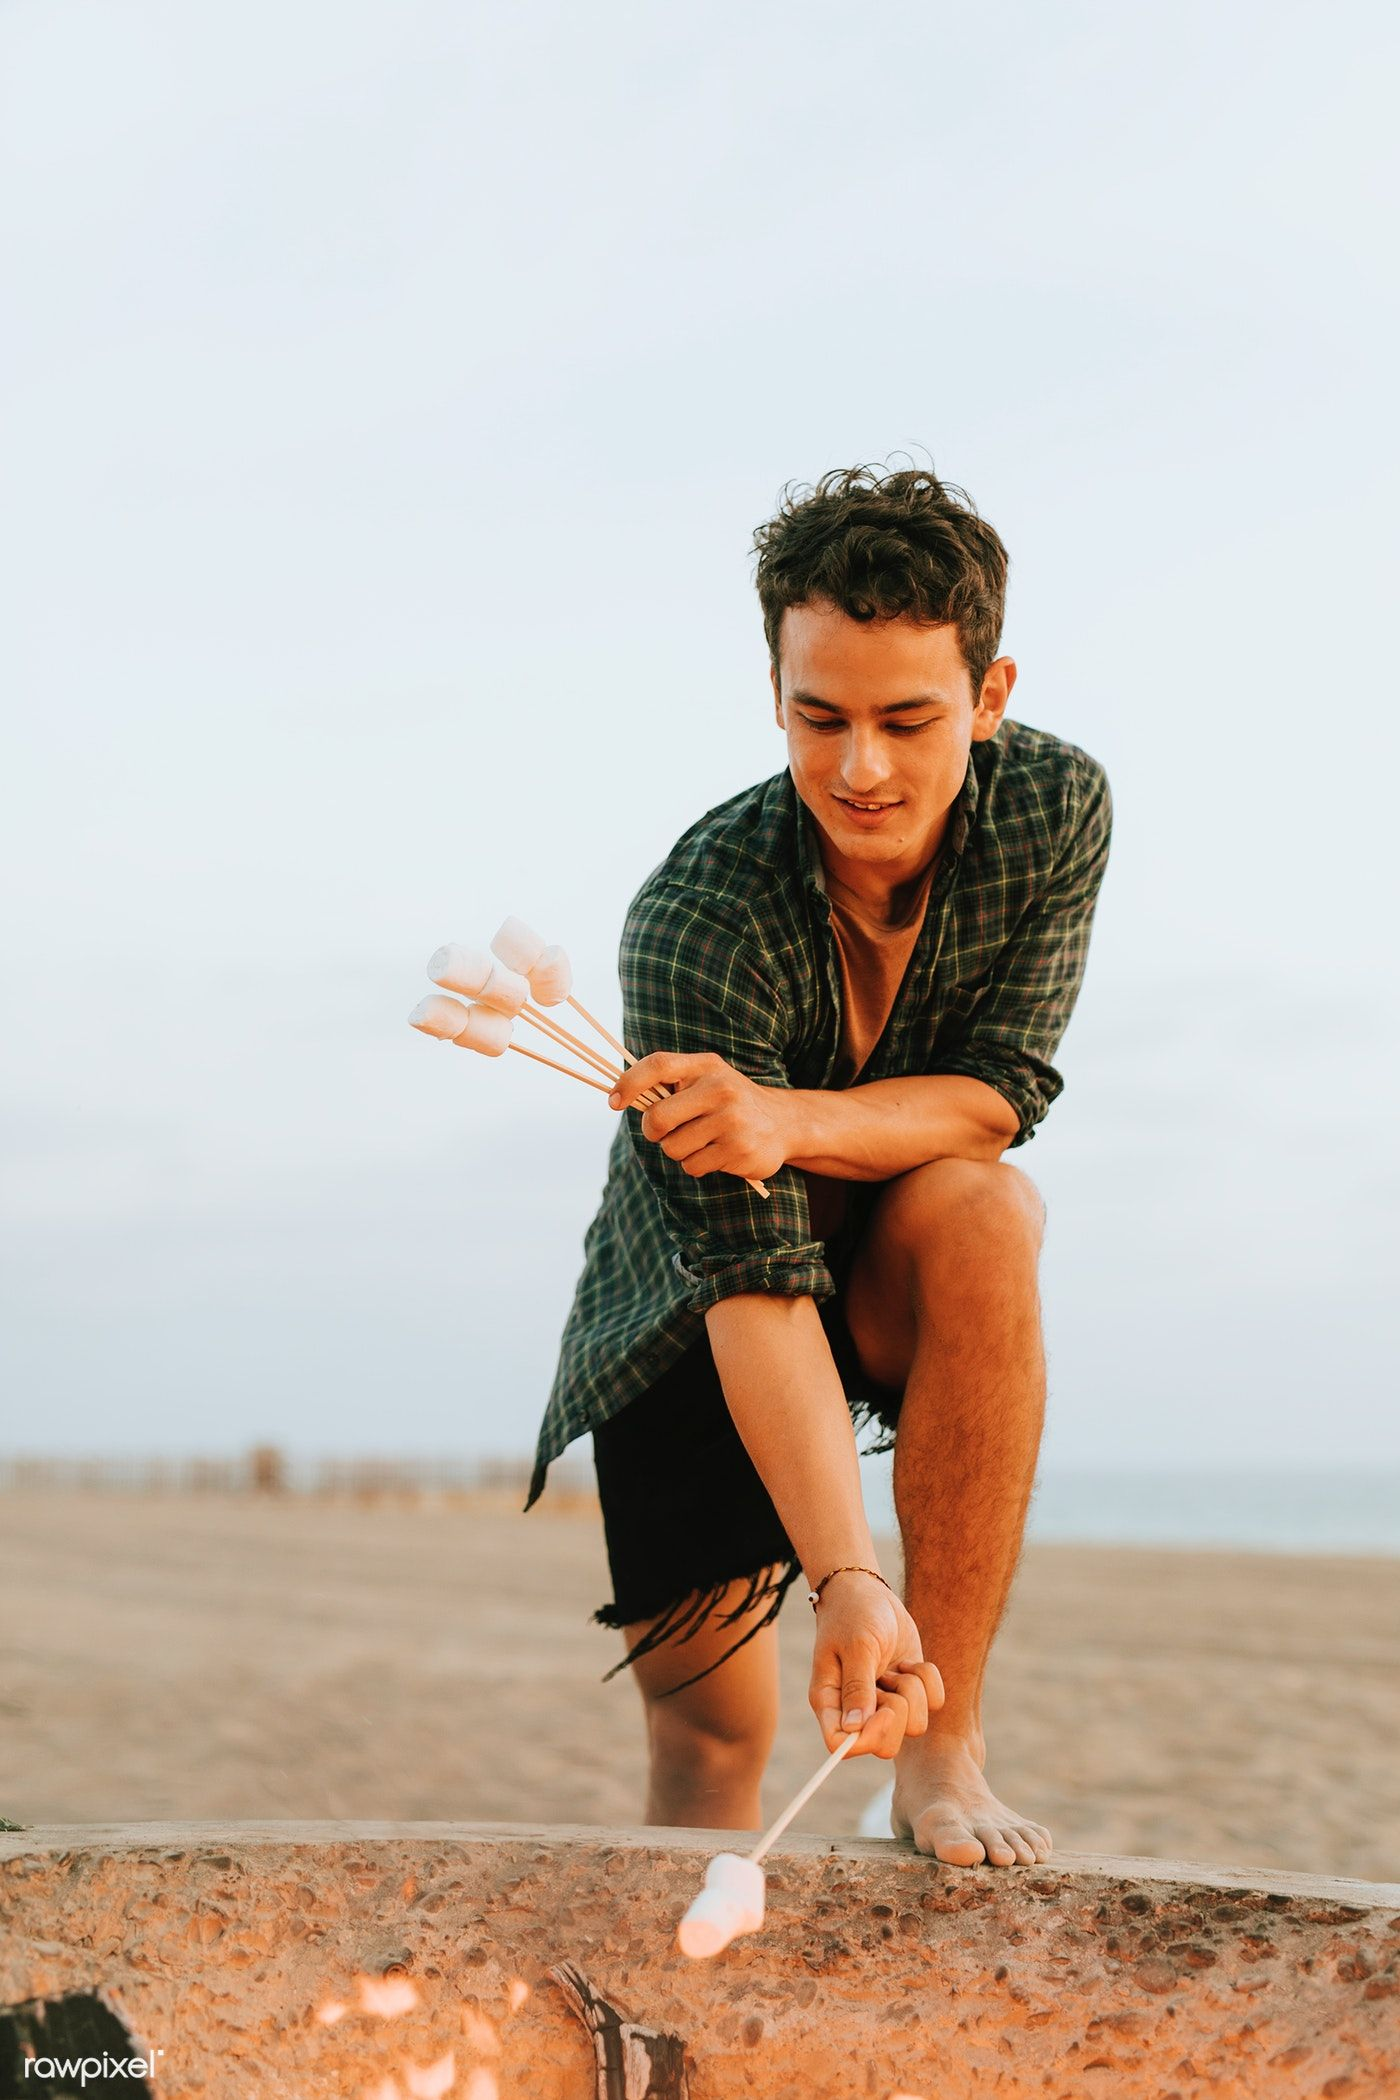 Download premium image of man roasting marshmallows over a